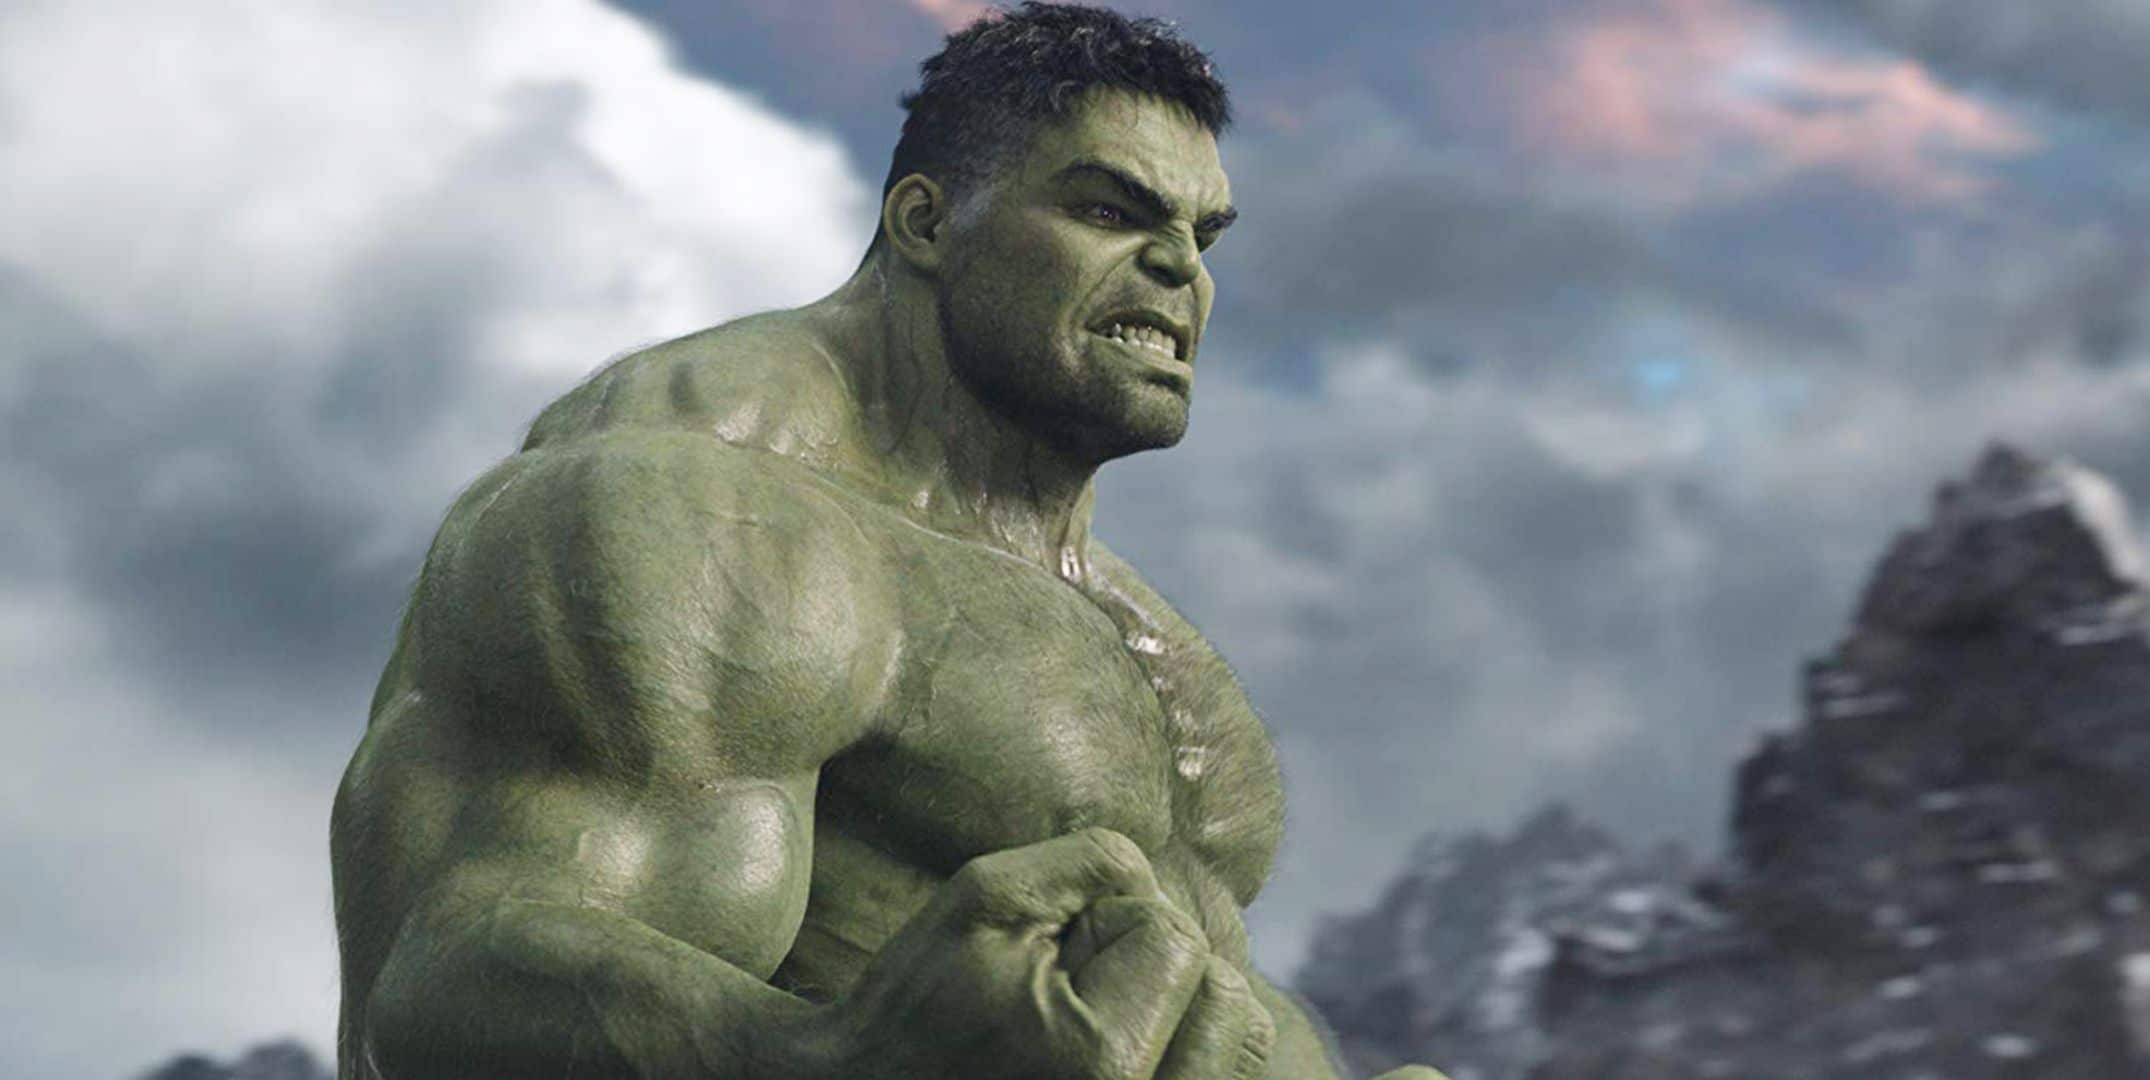 Hulk has a new suit